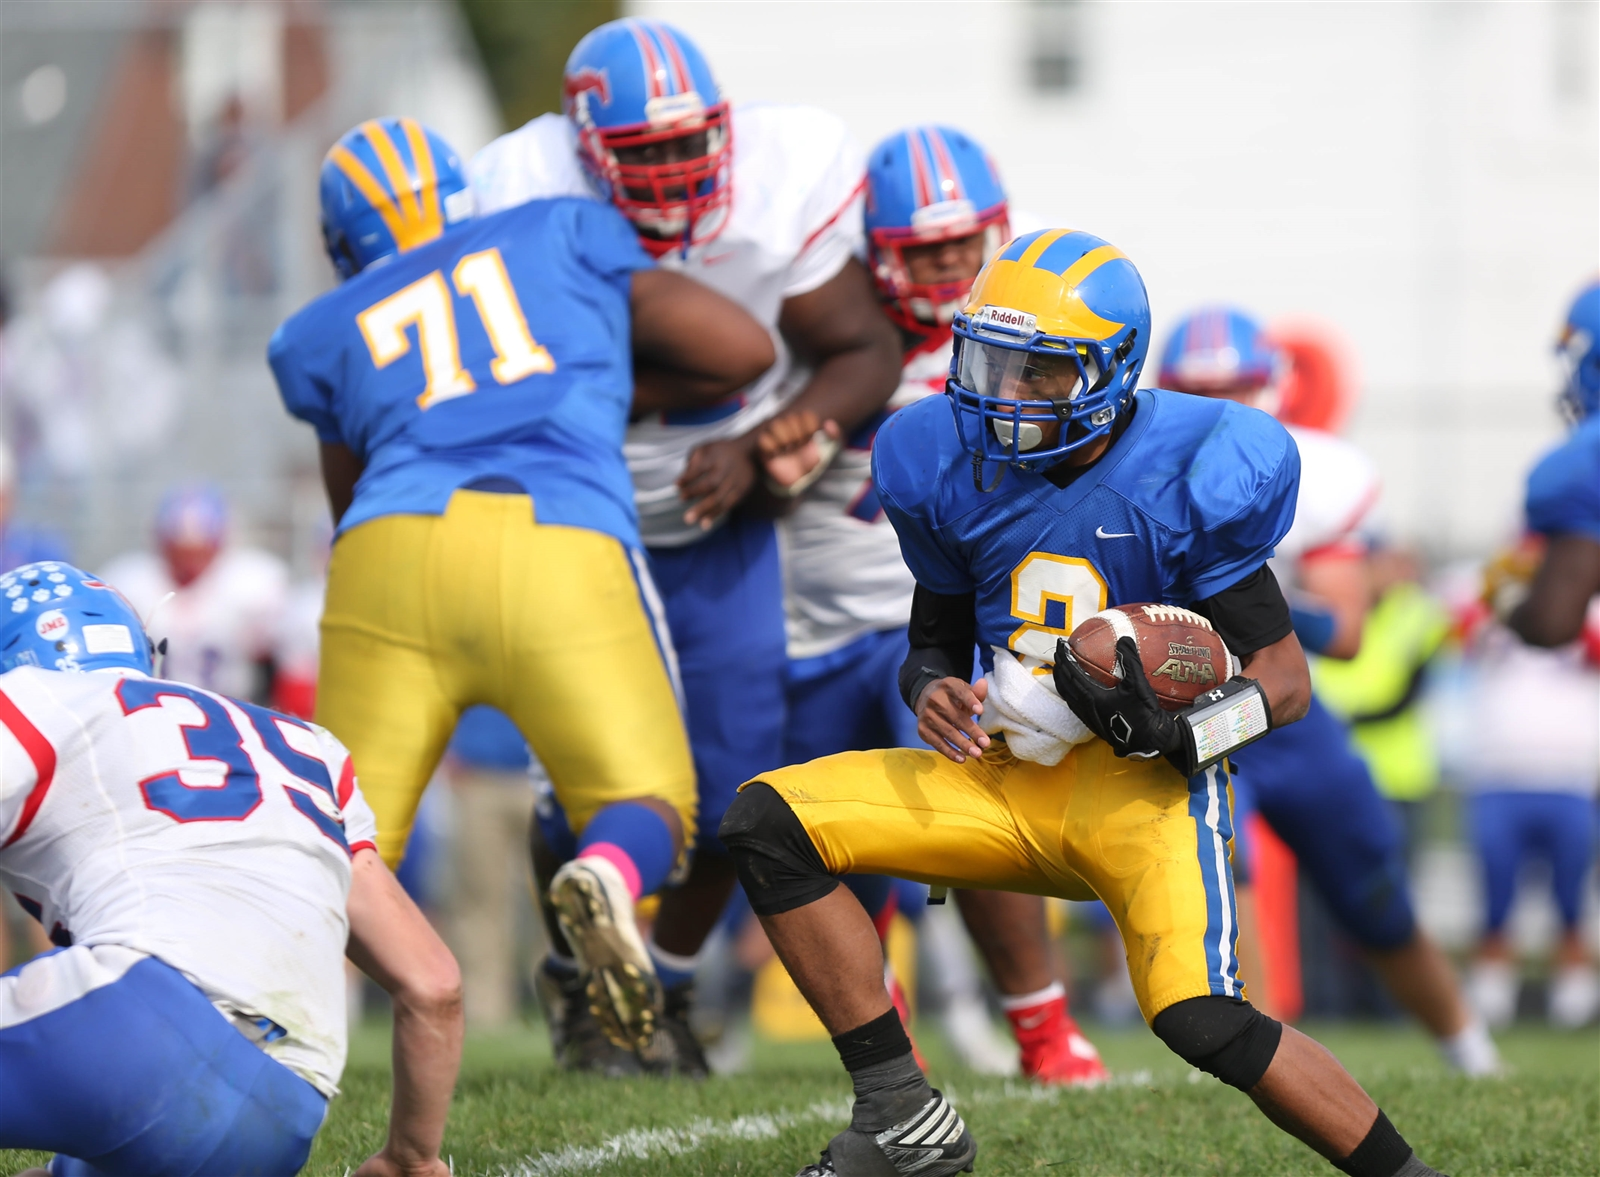 Tyler Phillips and the Cleveland Hill Golden Eagles begin their quest for a playoff championship at home Saturday afternoon. (Dave DeLuca/Special to The News)